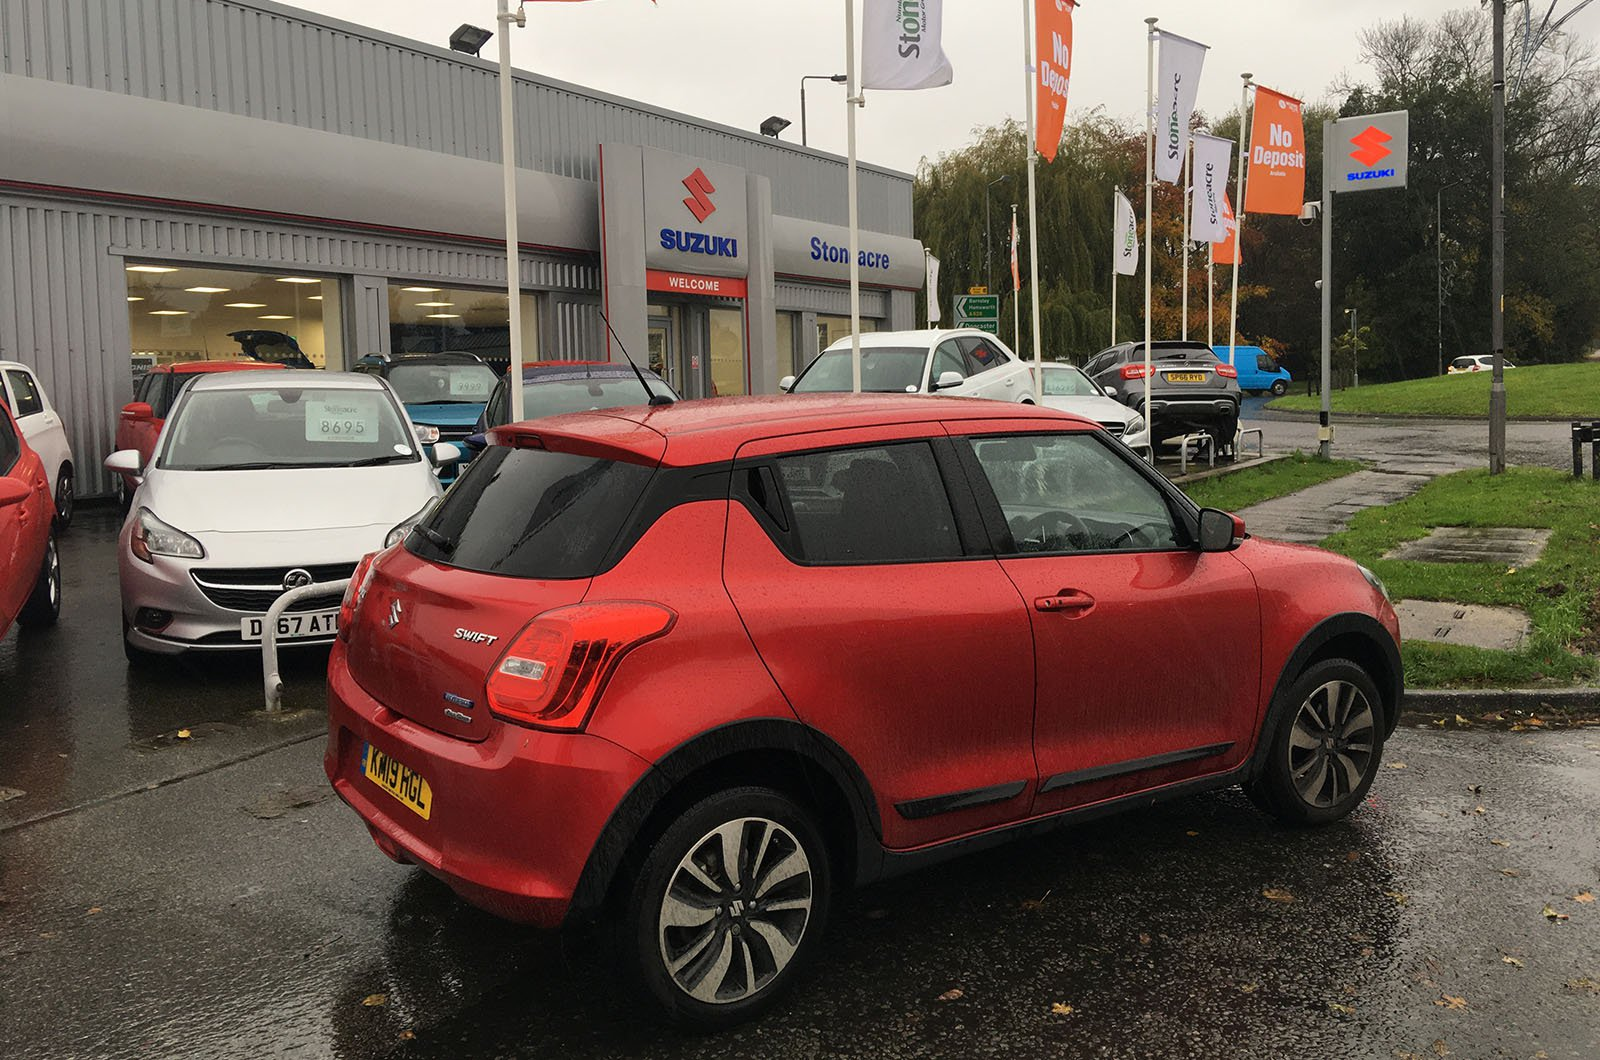 Used Suzuki Swift long term dealership visit